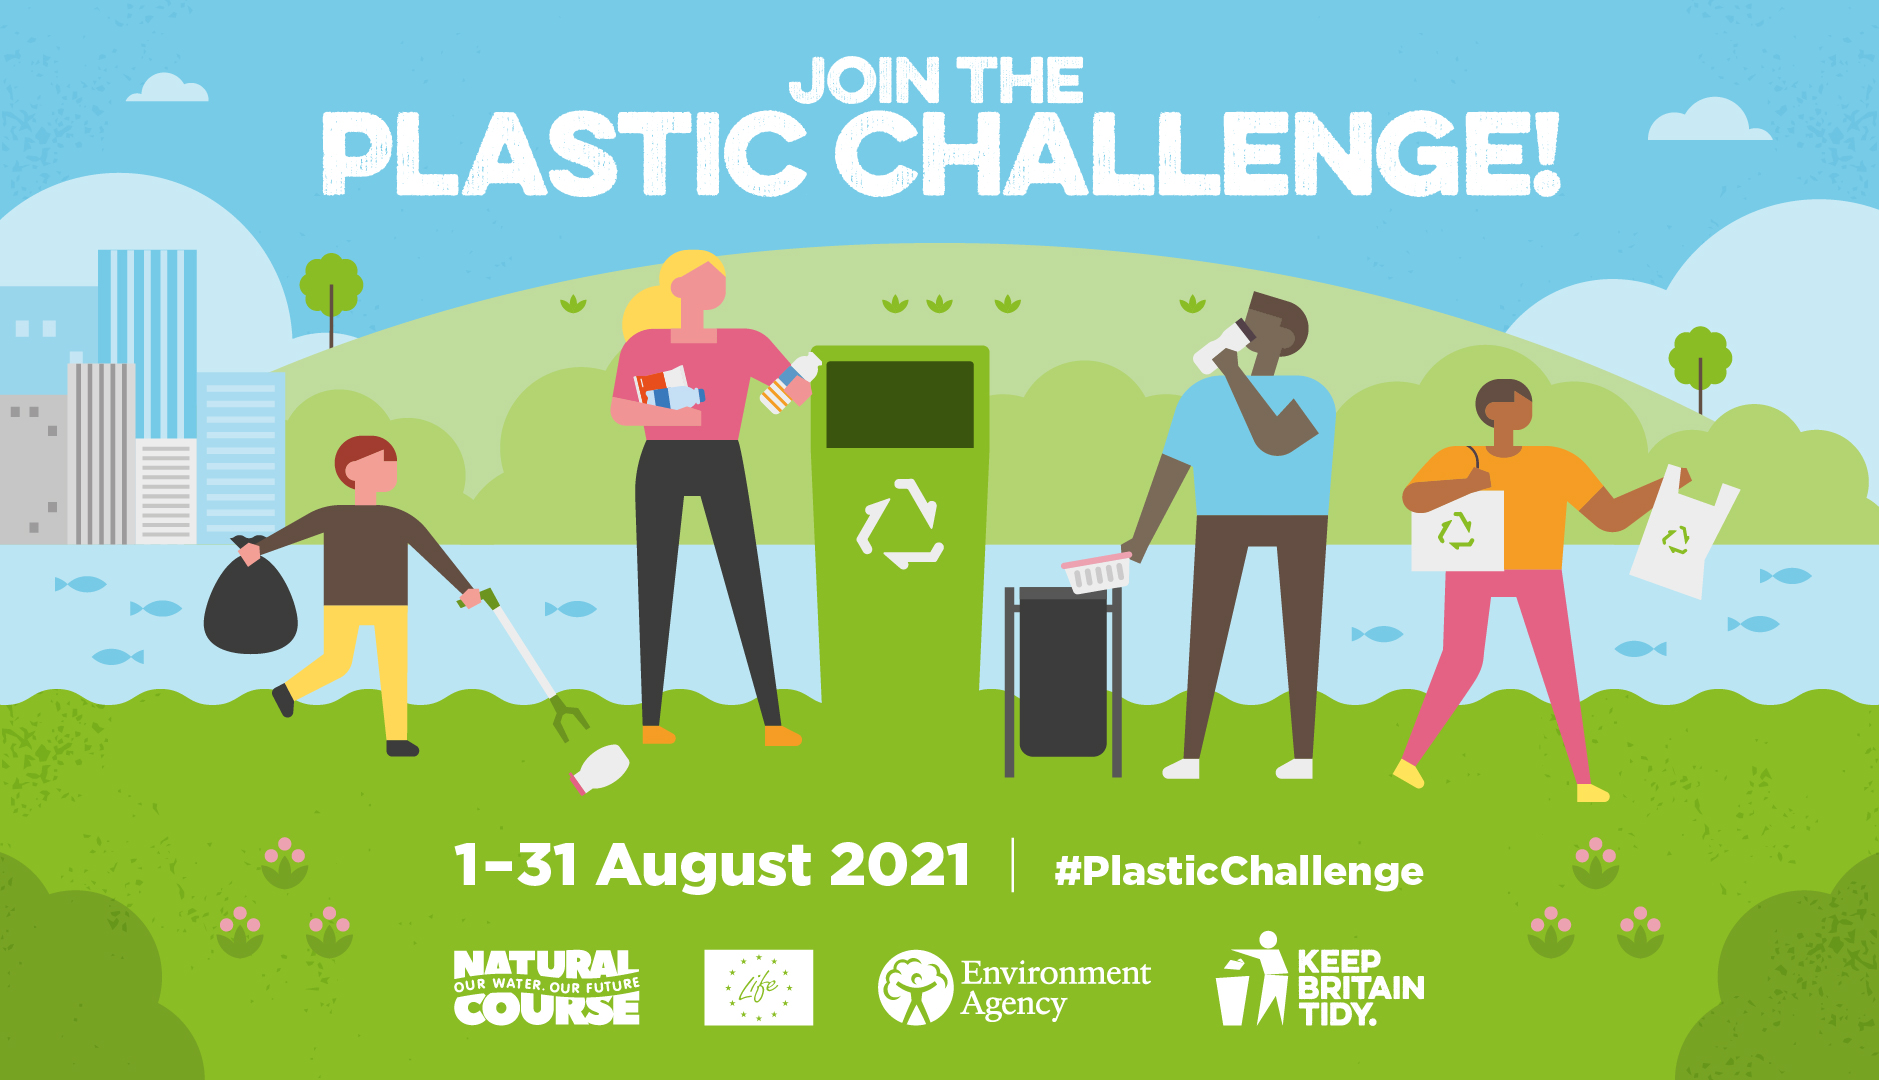 Join the Plastic Challenge